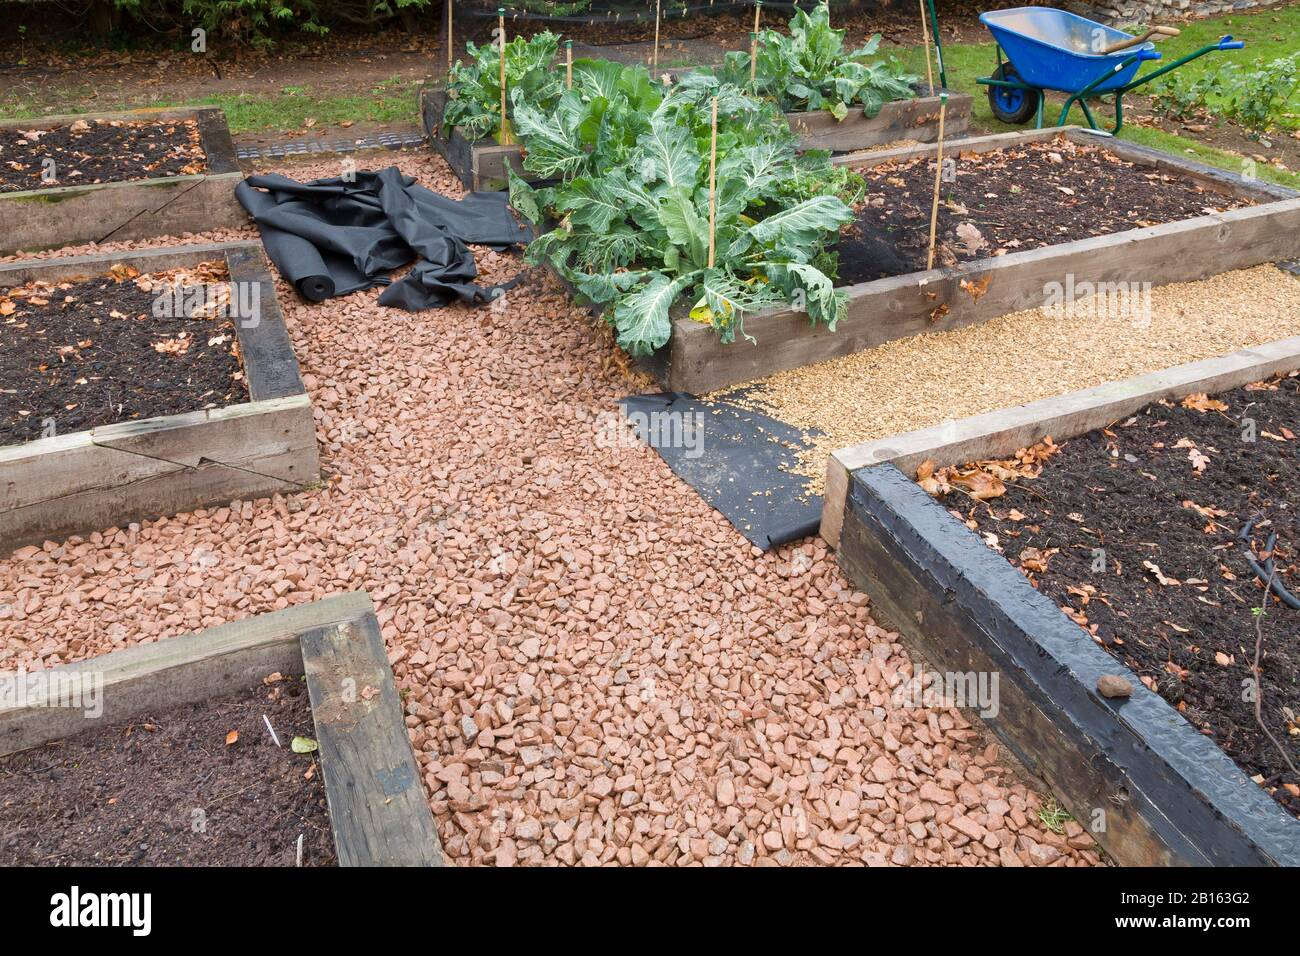 Laying Weed Control Fabric Or Weed Membrane And A Gravel Path In A